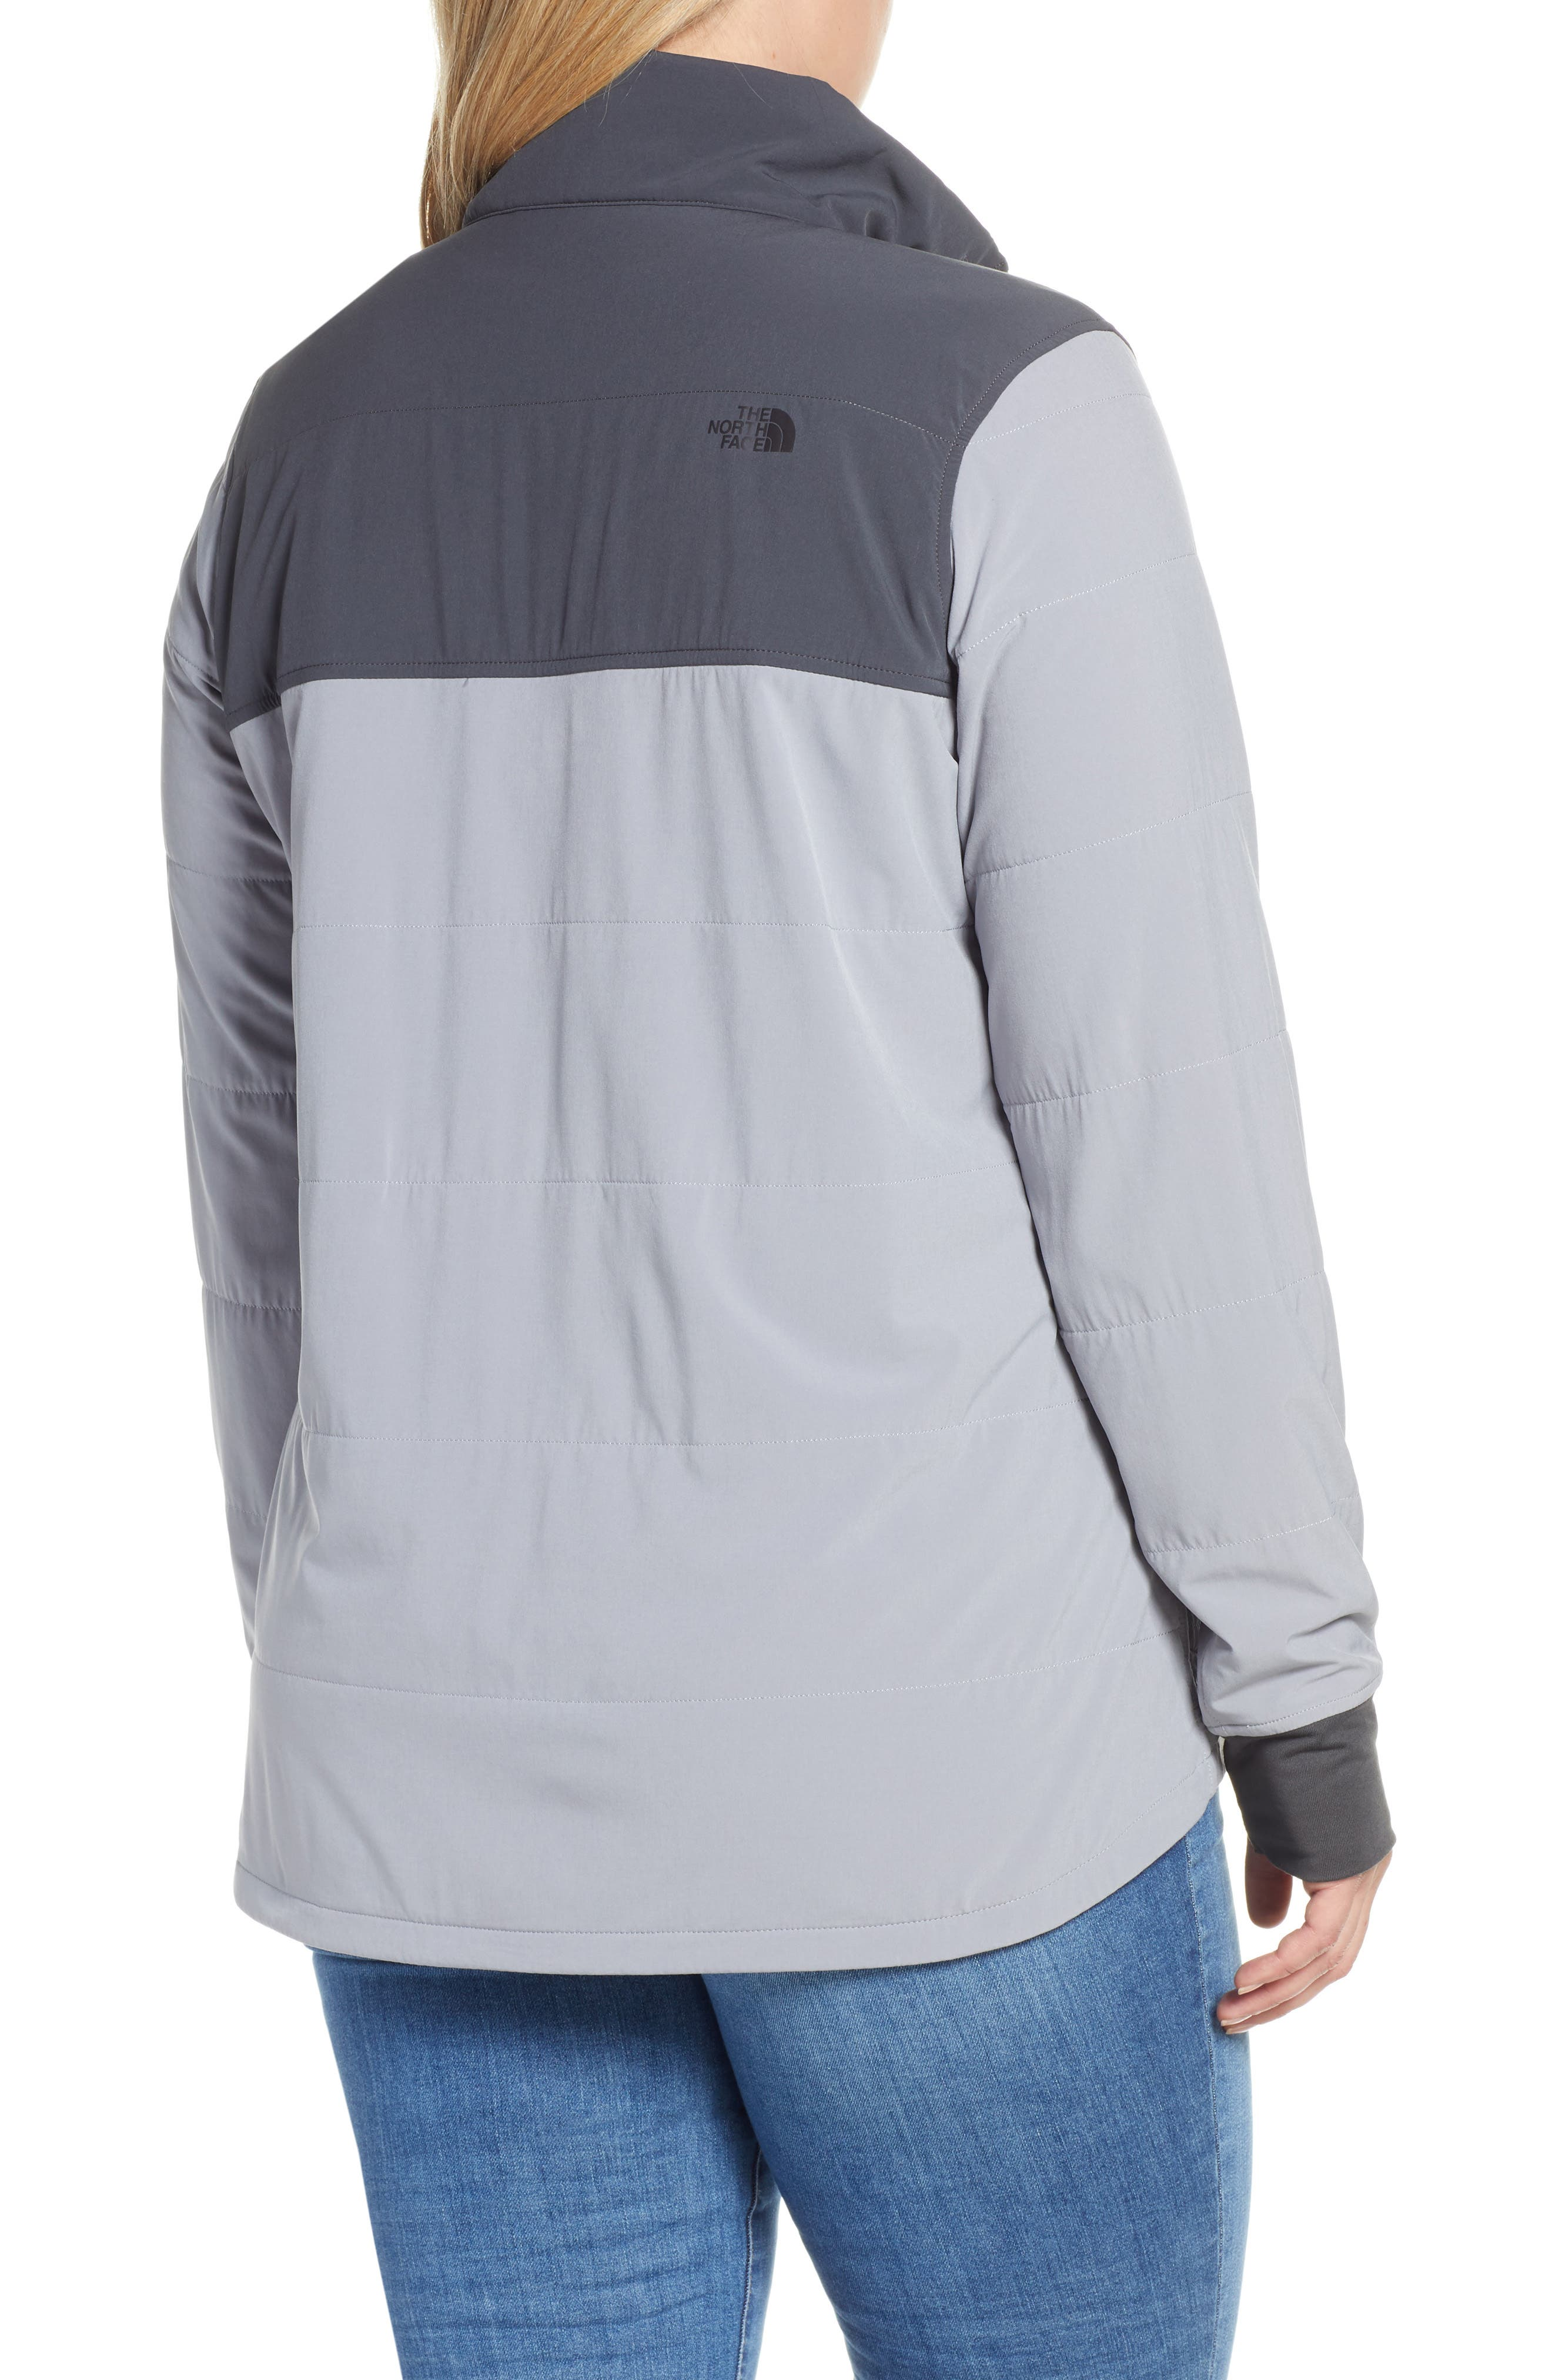 THE NORTH FACE, Mountain Insulated Snap Pullover Jacket, Alternate thumbnail 3, color, GREY/ MID GREY